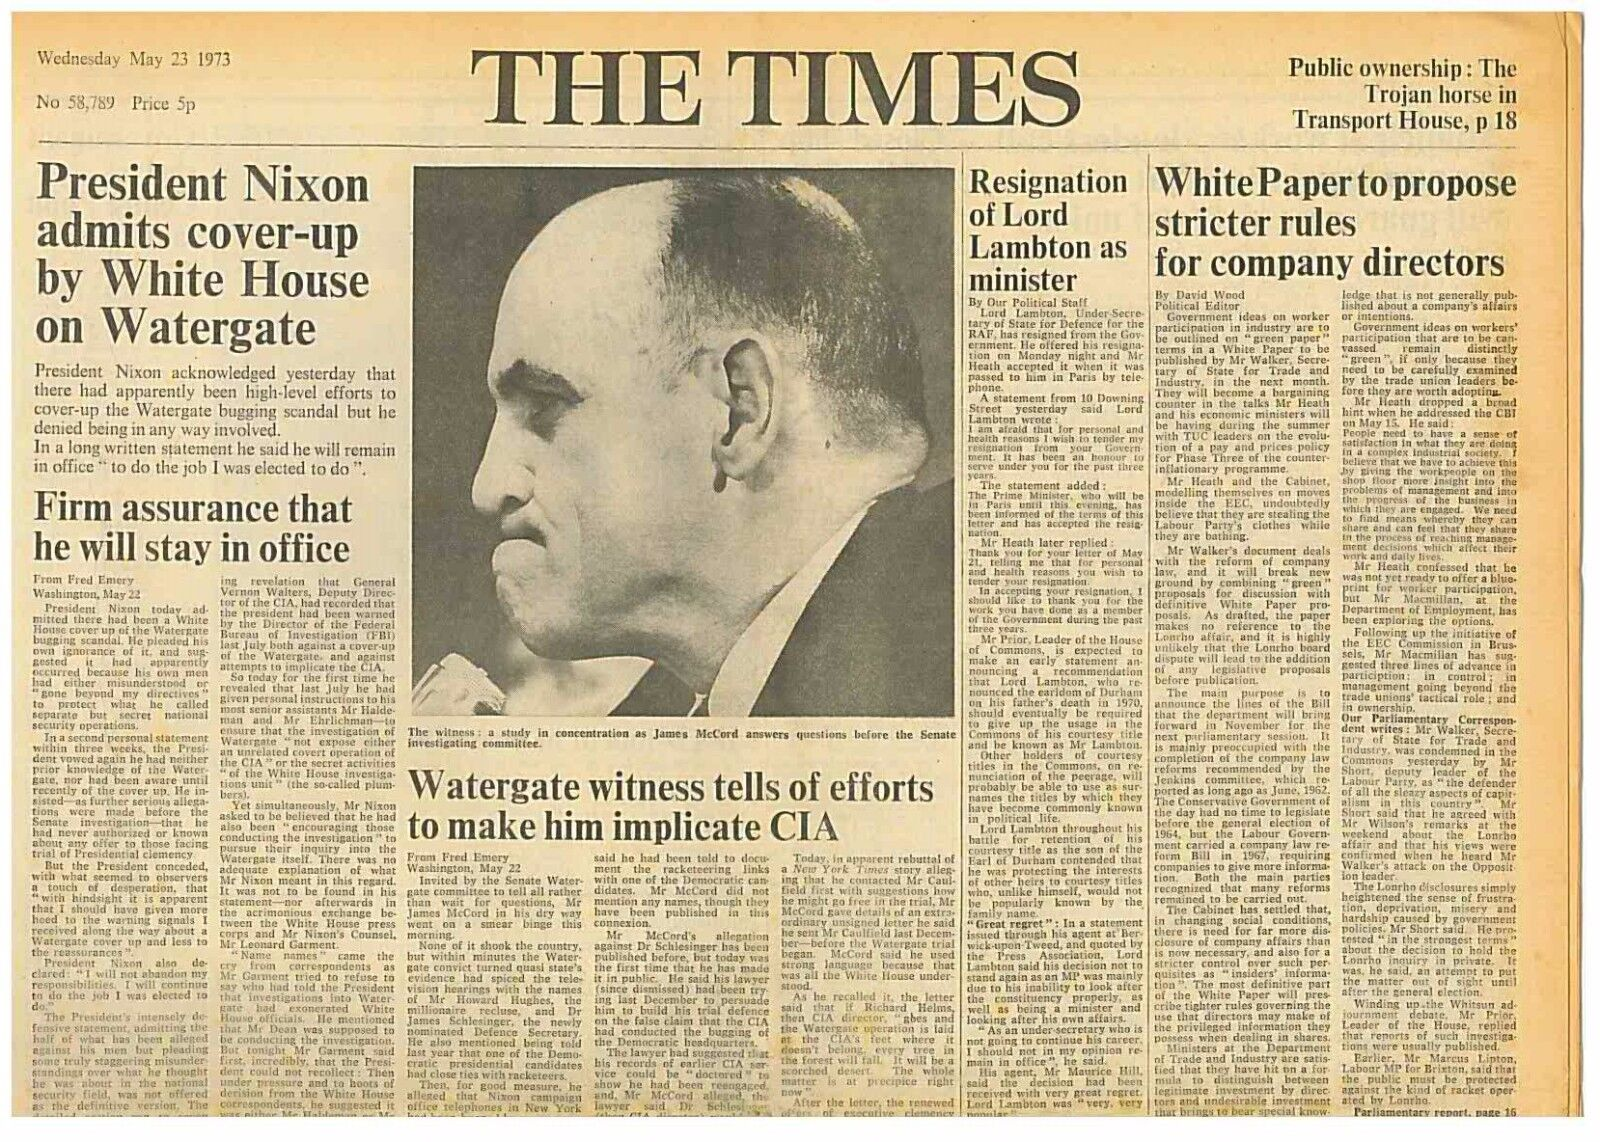 watergate scandal and president nixon essay What is nixon's plan for dealing with the fbi's investigation of the watergate break-in he wants to say that he thinks this will open up the whole bay of pigs thing again and he wishes for the country that they not go any further into the case.